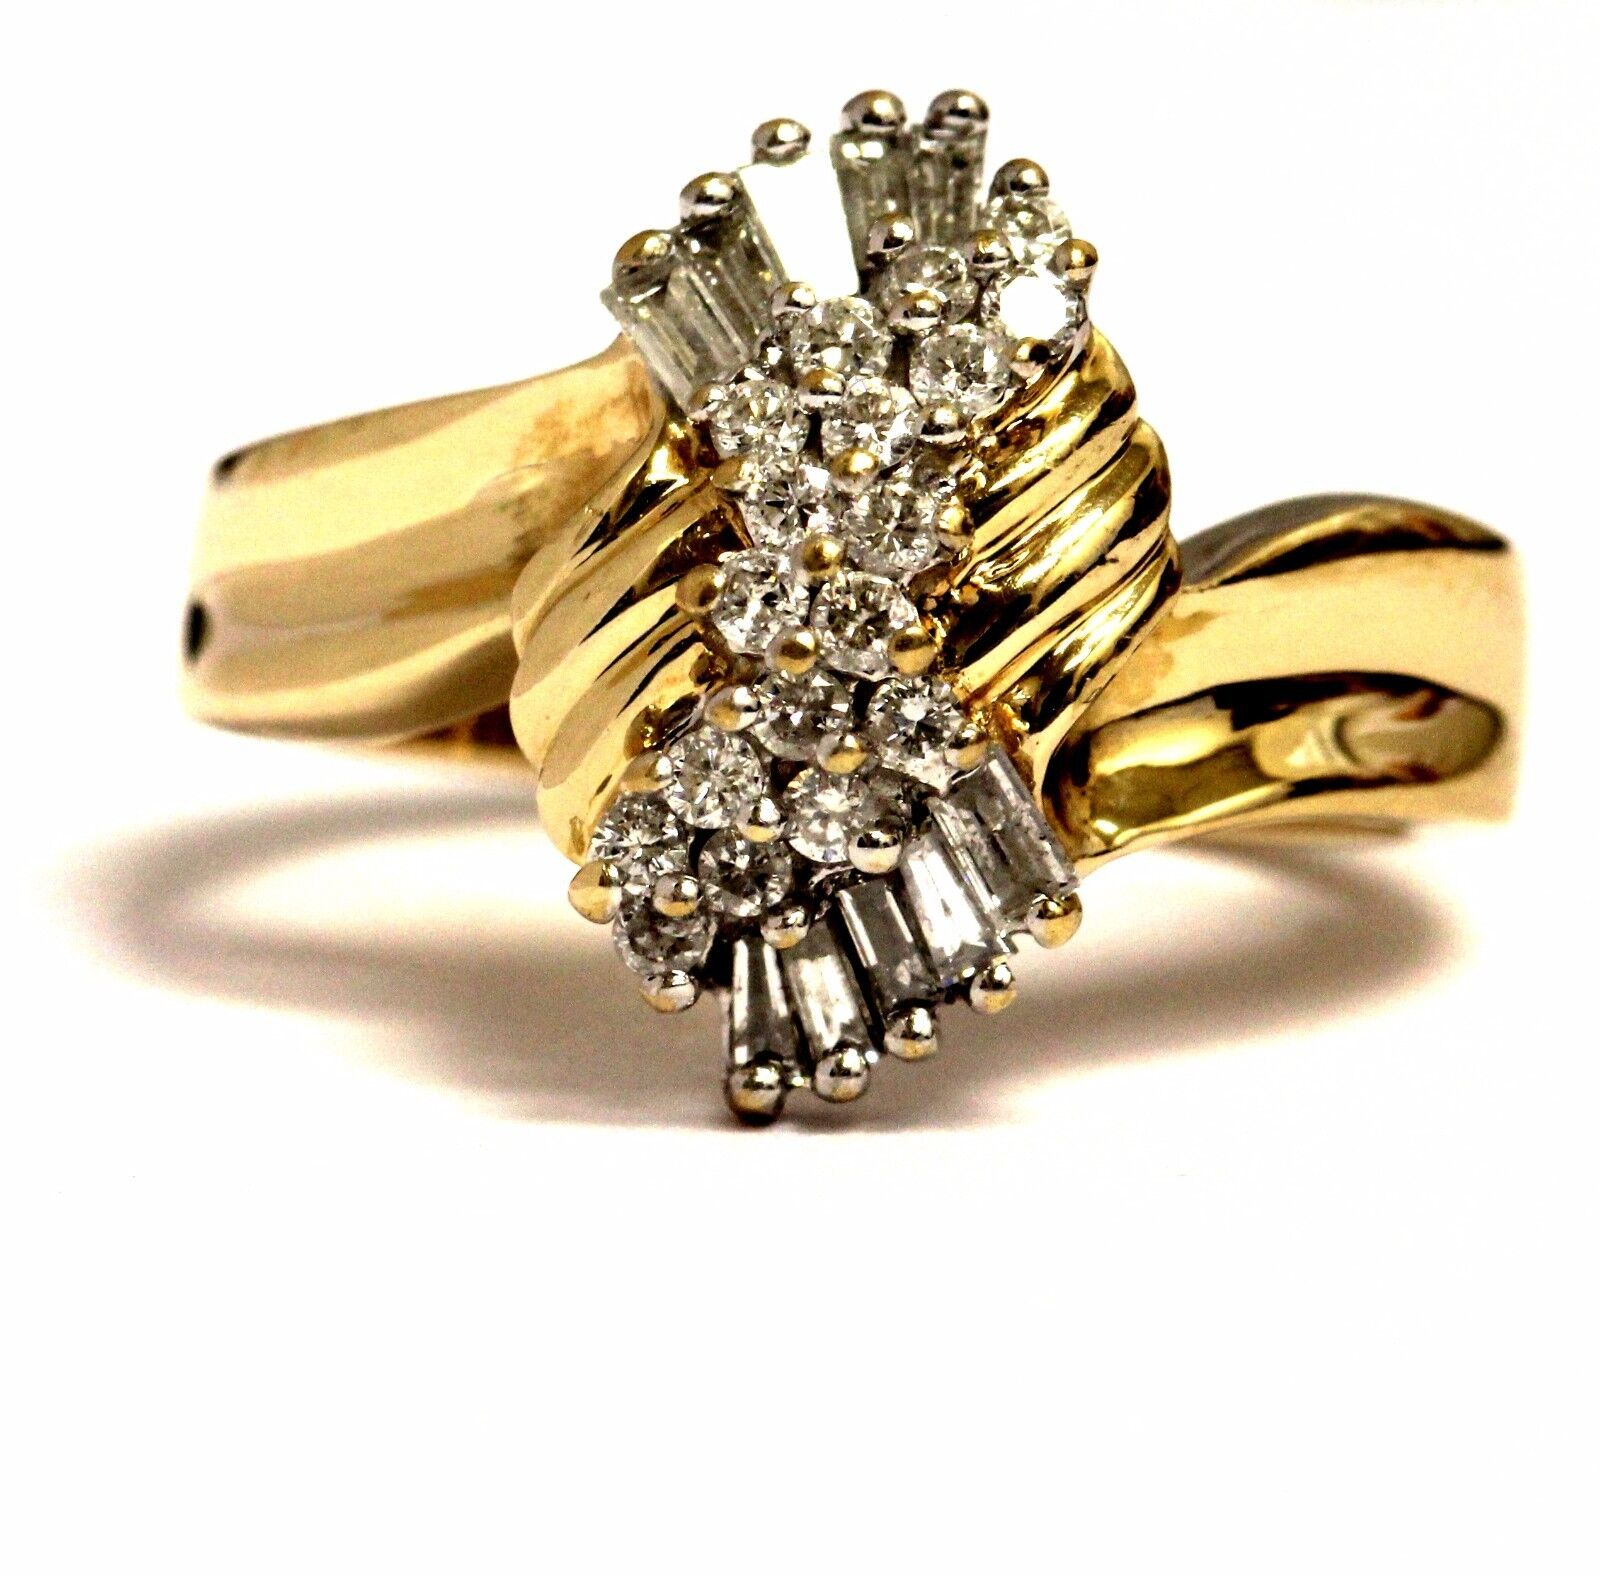 14k yellow gold .57ct SI2 H diamond cluster ring 4.8g estate vintage womens